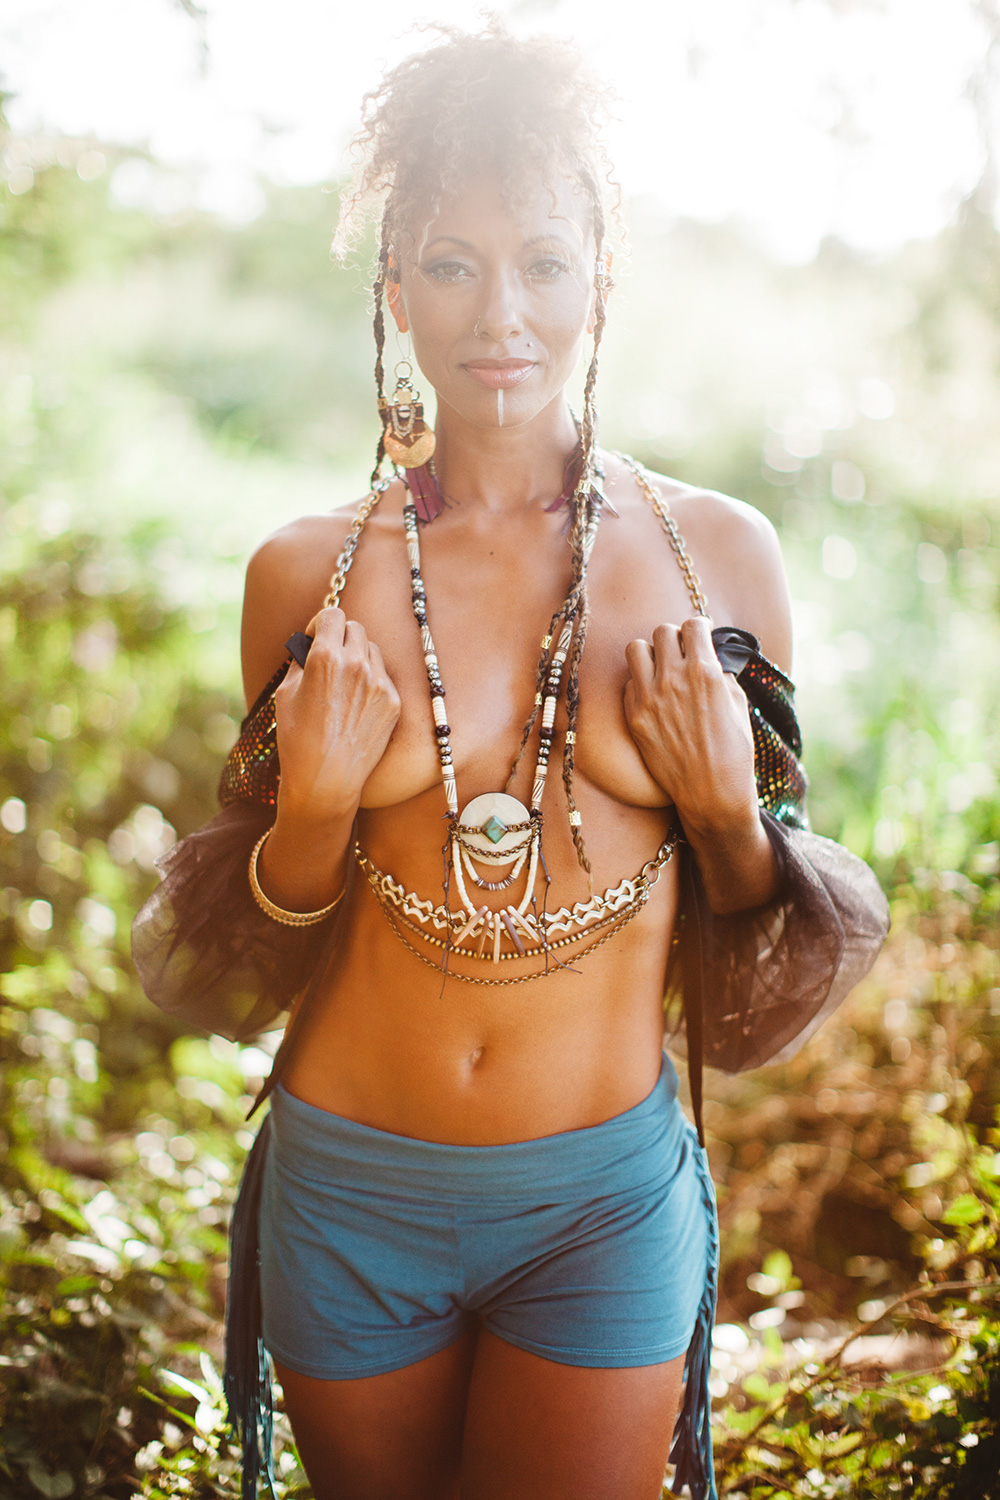 ladyhawk love photoshoot on Maui with shay butta by cadencia photography.